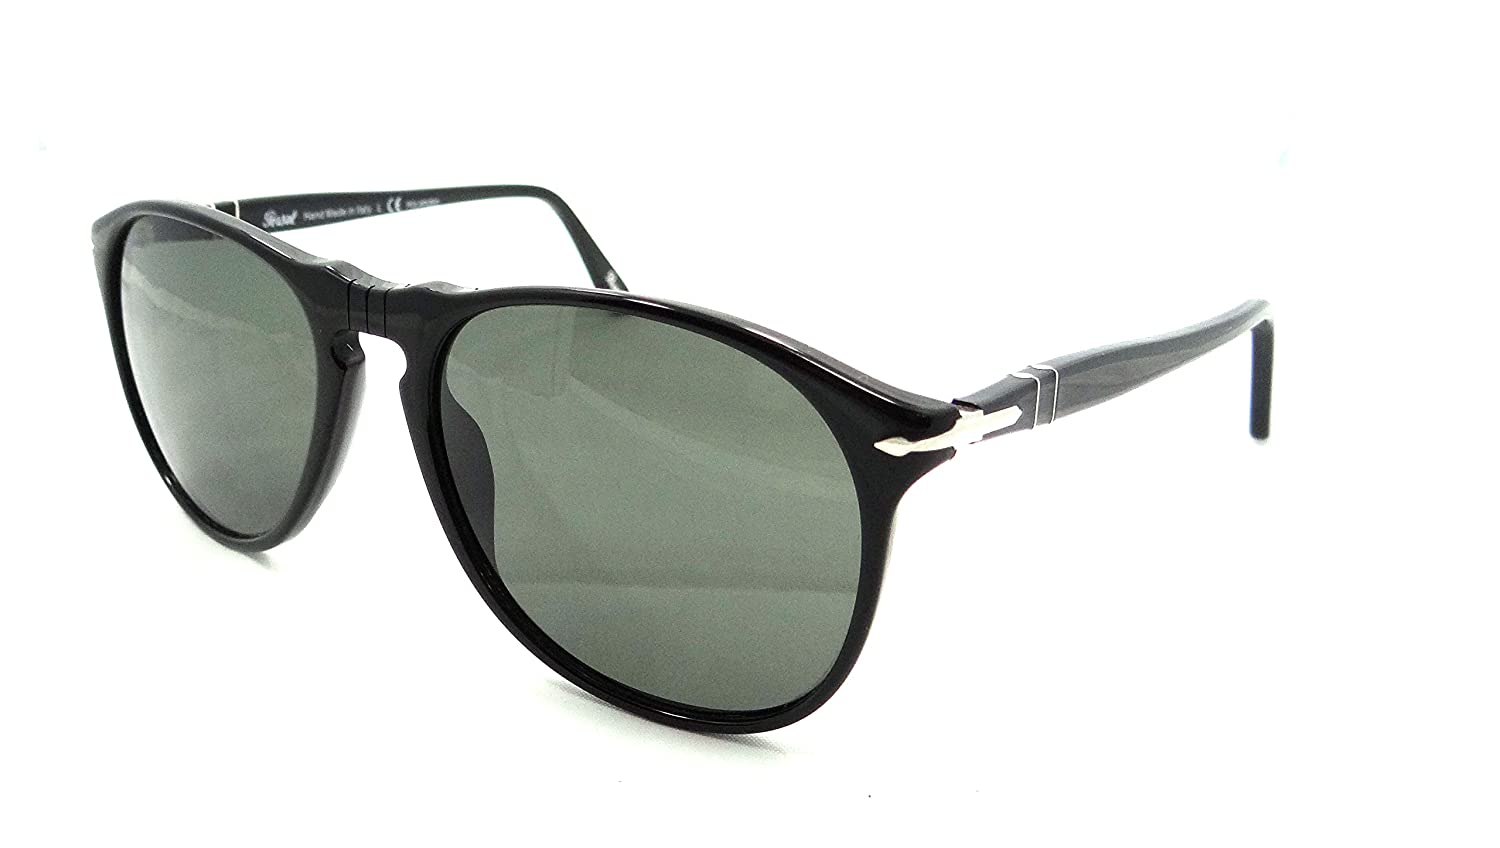 1036ed1b6 Amazon.com: Persol Sunglasses 9649 S 95/58 55x18 Black / Green Polarized  Made in Italy: Clothing